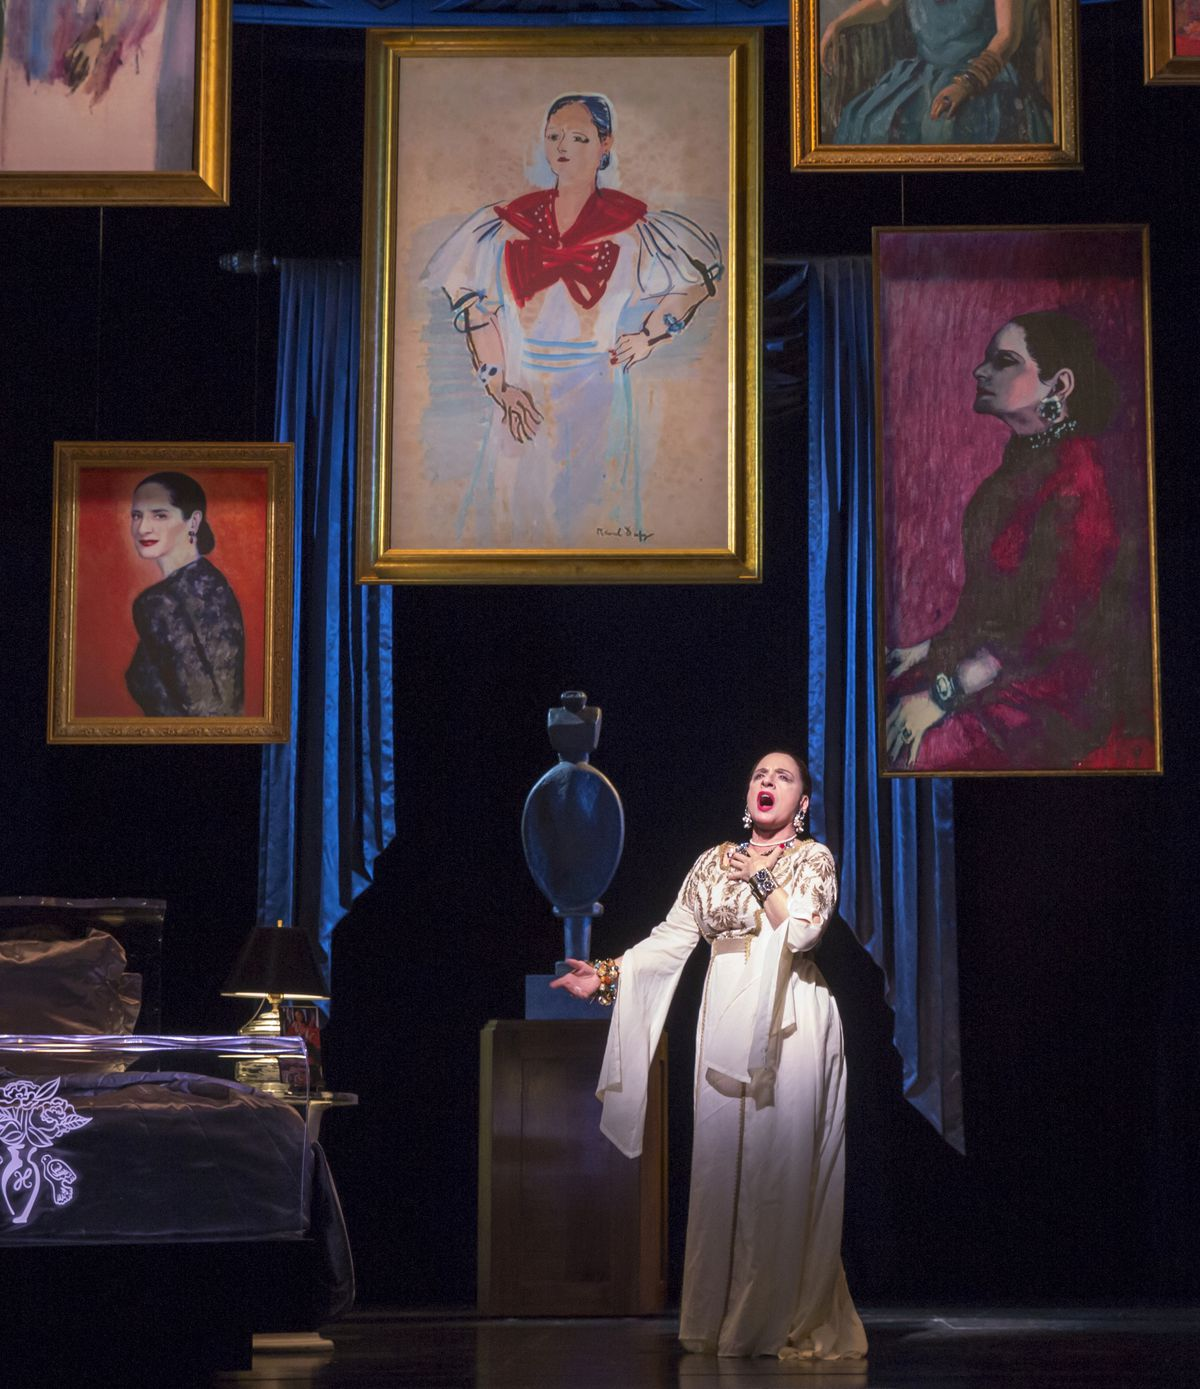 """Patti LuPone (as cosmetics mogul Helena Rubinstein) is surrounded by portraits in """"War Paint,"""" the world premiere musical at the Goodman Theatre. (Photo: Joan Marcus)"""